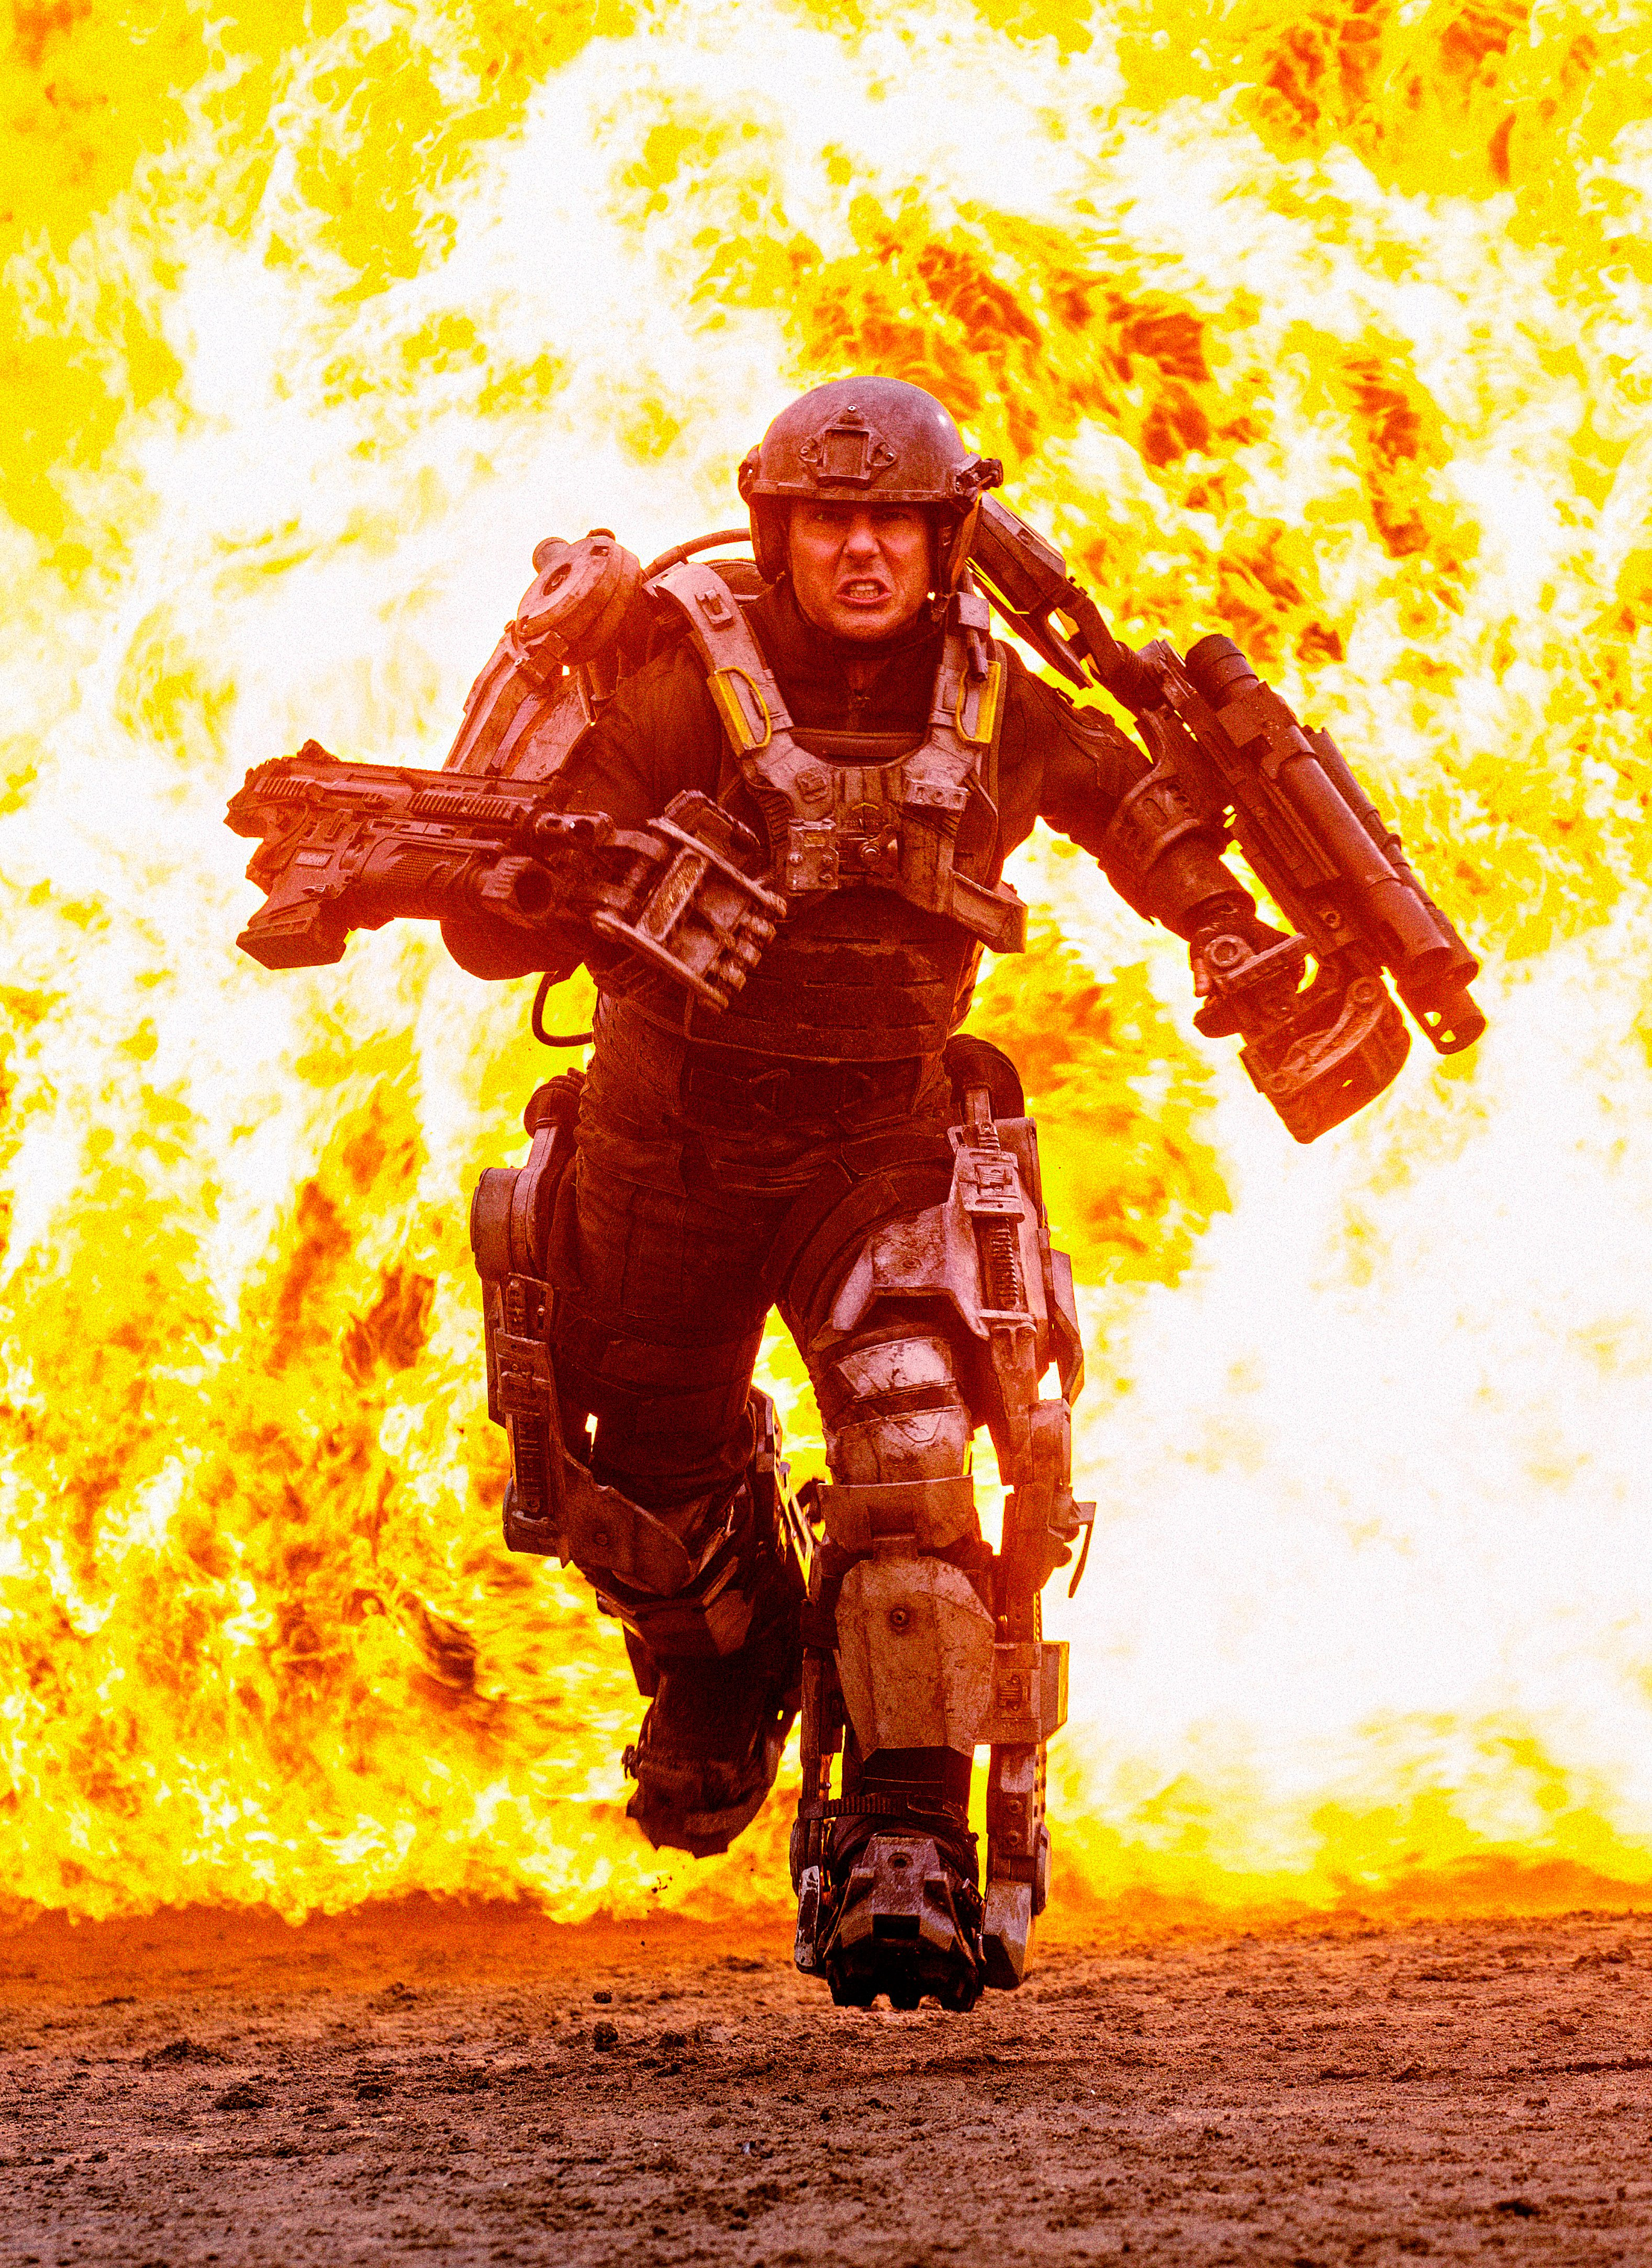 Tom Cruise Caught In A Time Loop In Edge Of Tomorrow Trailer